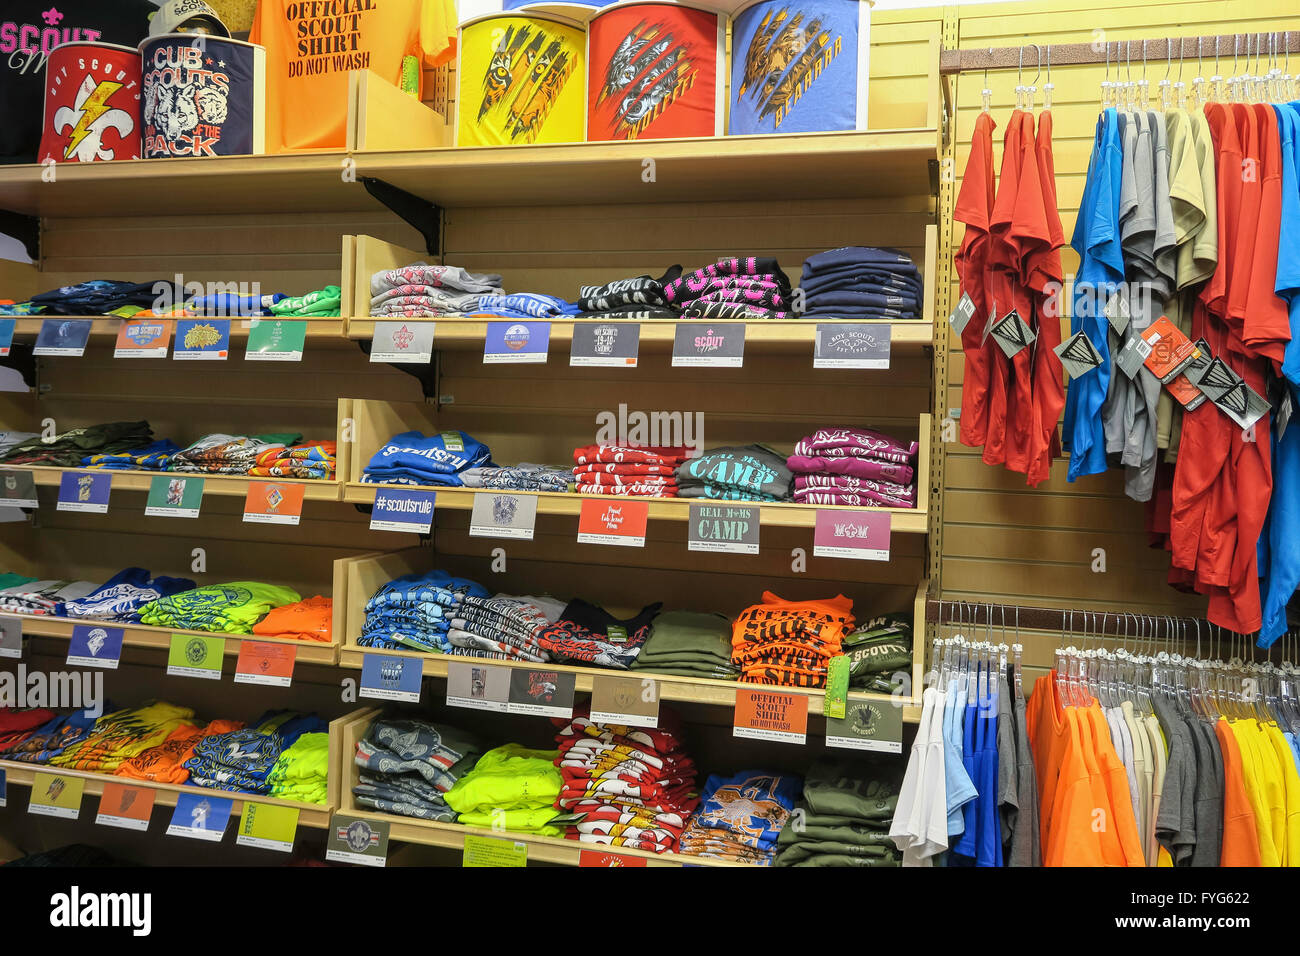 Boy Scouts of America Store in Manhattan, New York City, USA Stock ...